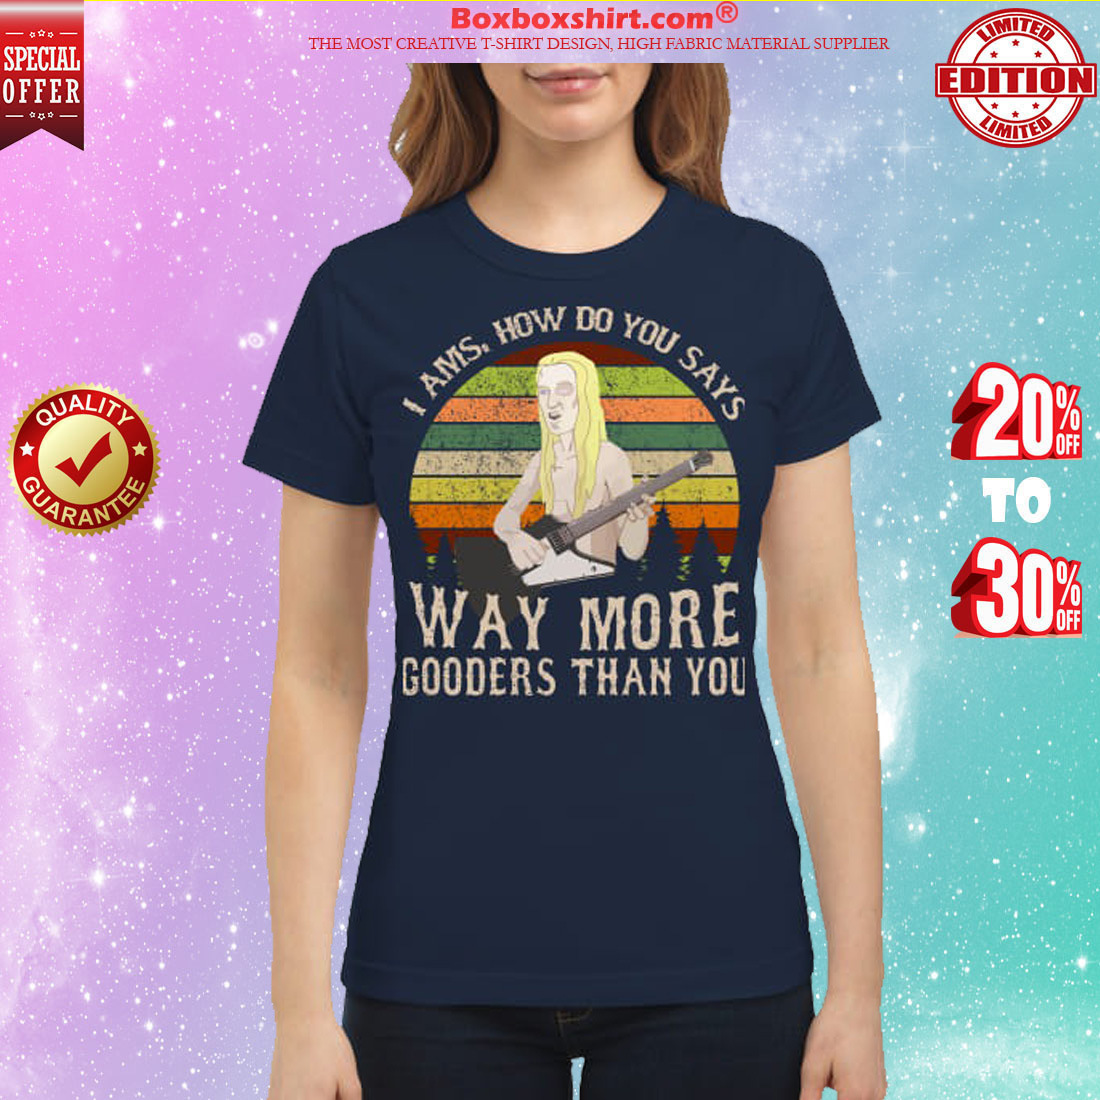 I ams how do you says way more gooders than you classic shirt